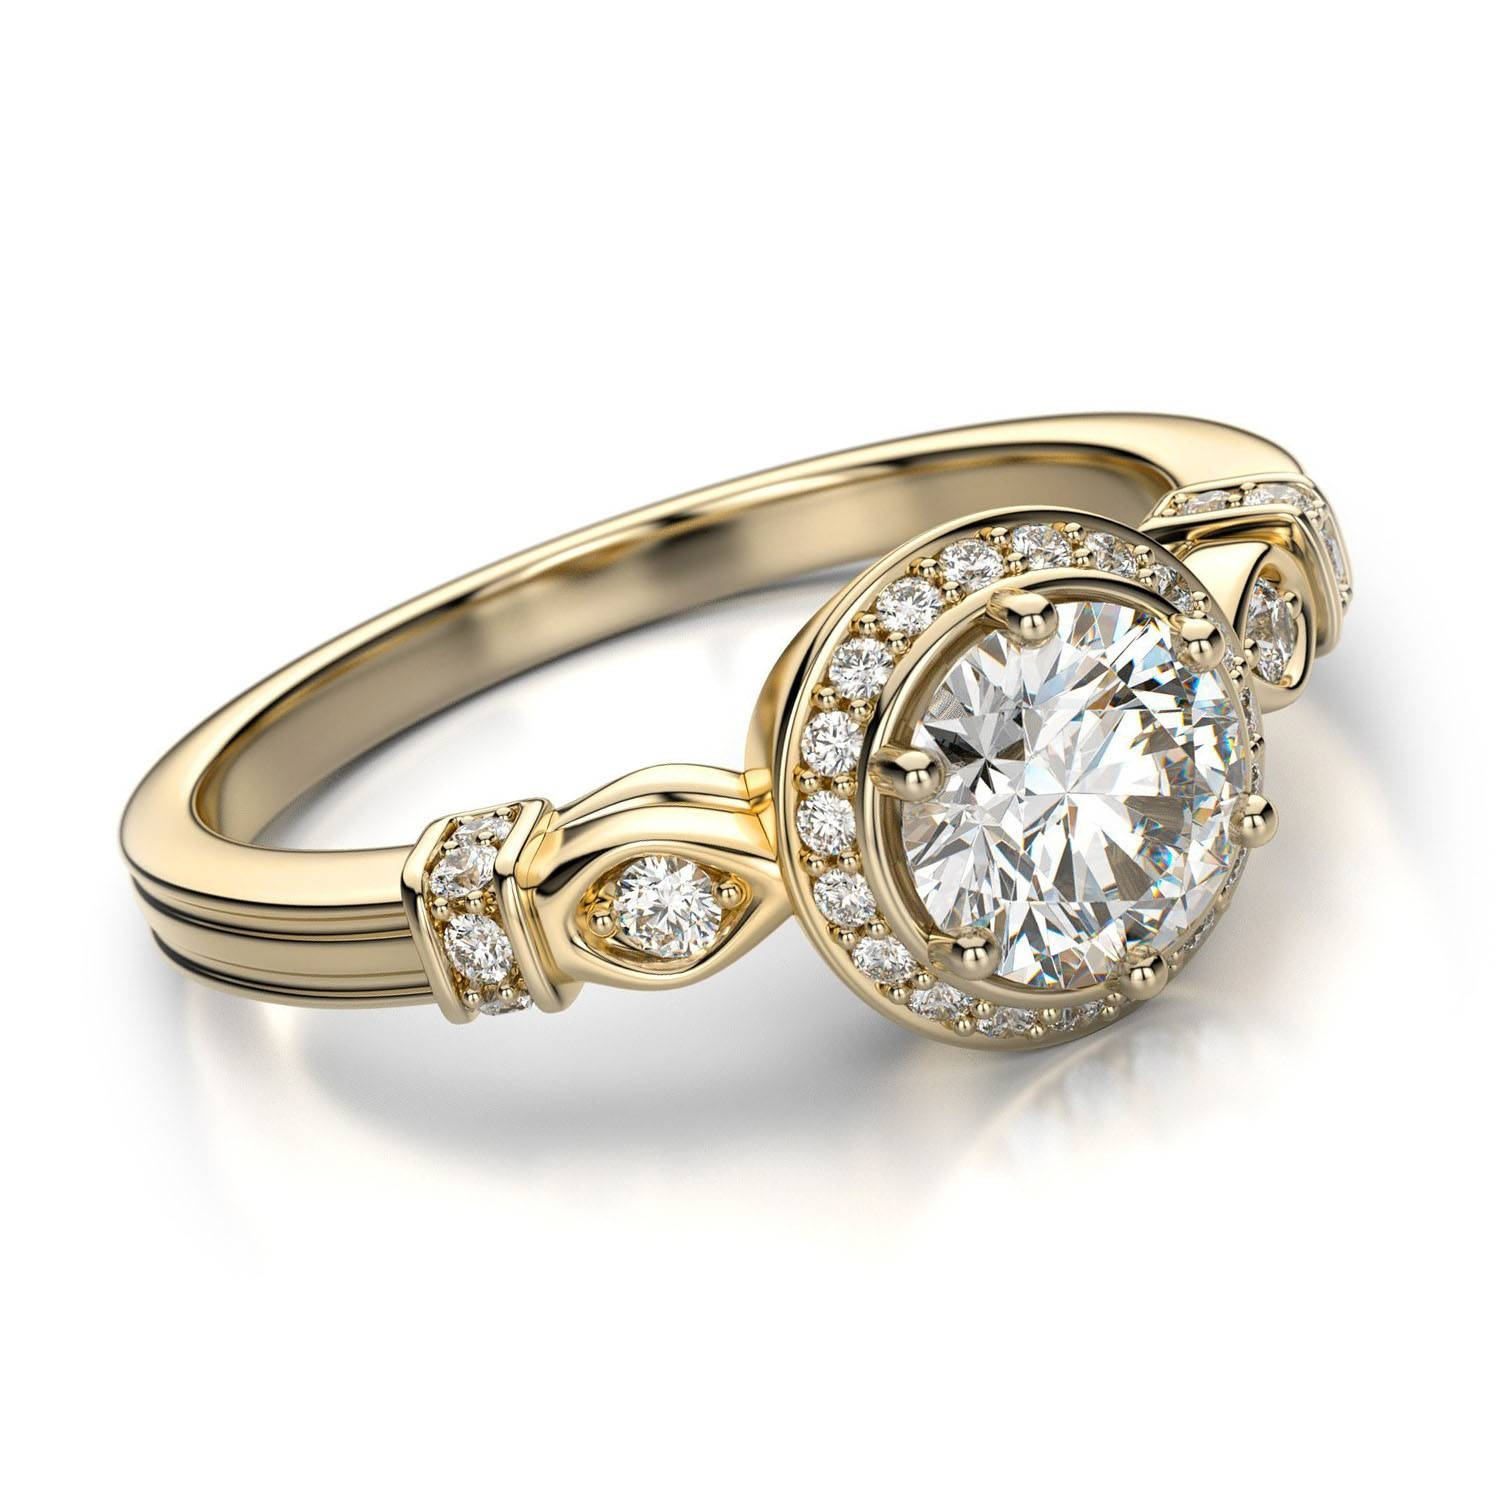 Engagement Rings : Stunning Halo Engagement Rings Cheap My Ring 3 Inside Engagement Rings For Ladies (View 8 of 15)